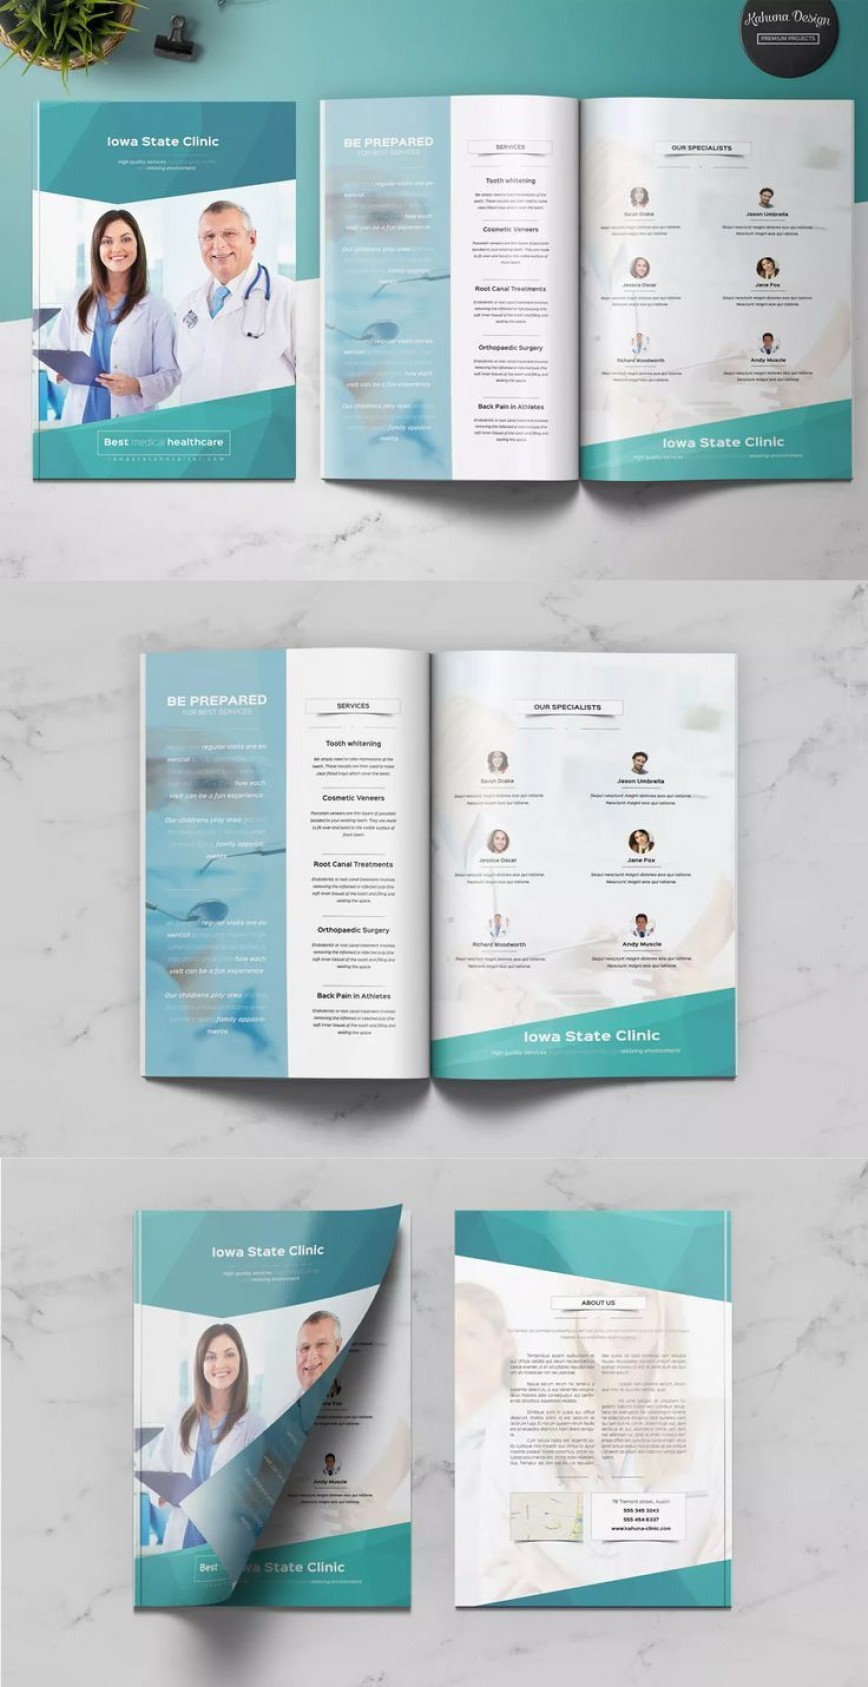 005 Fascinating Download Brochure Template For Word 2007 Highest Clarity 868